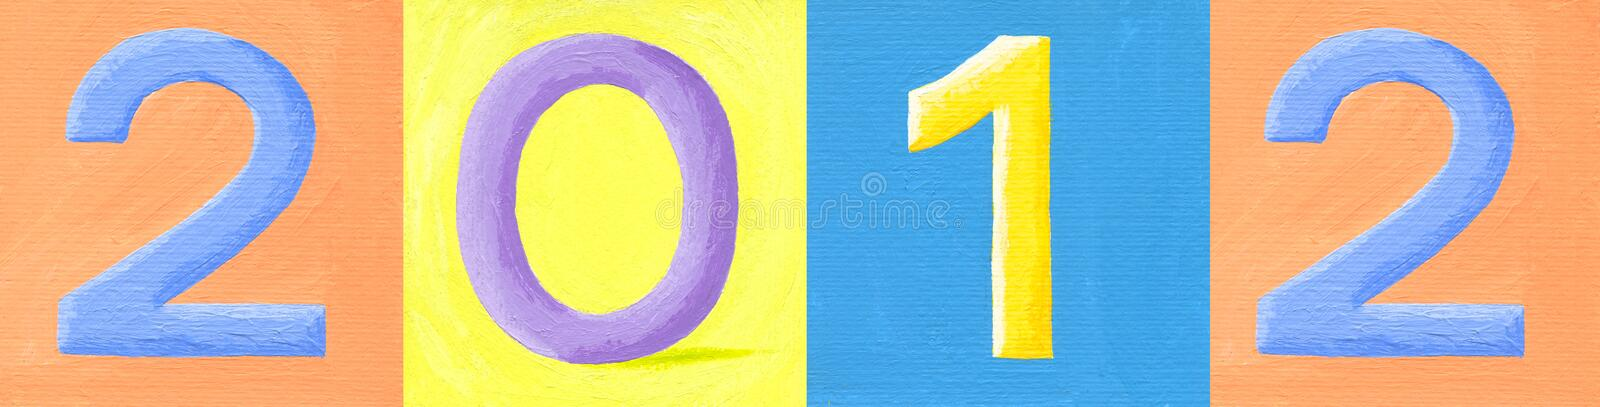 Number 2012. Acrylic illustration of number 2012 stock illustration